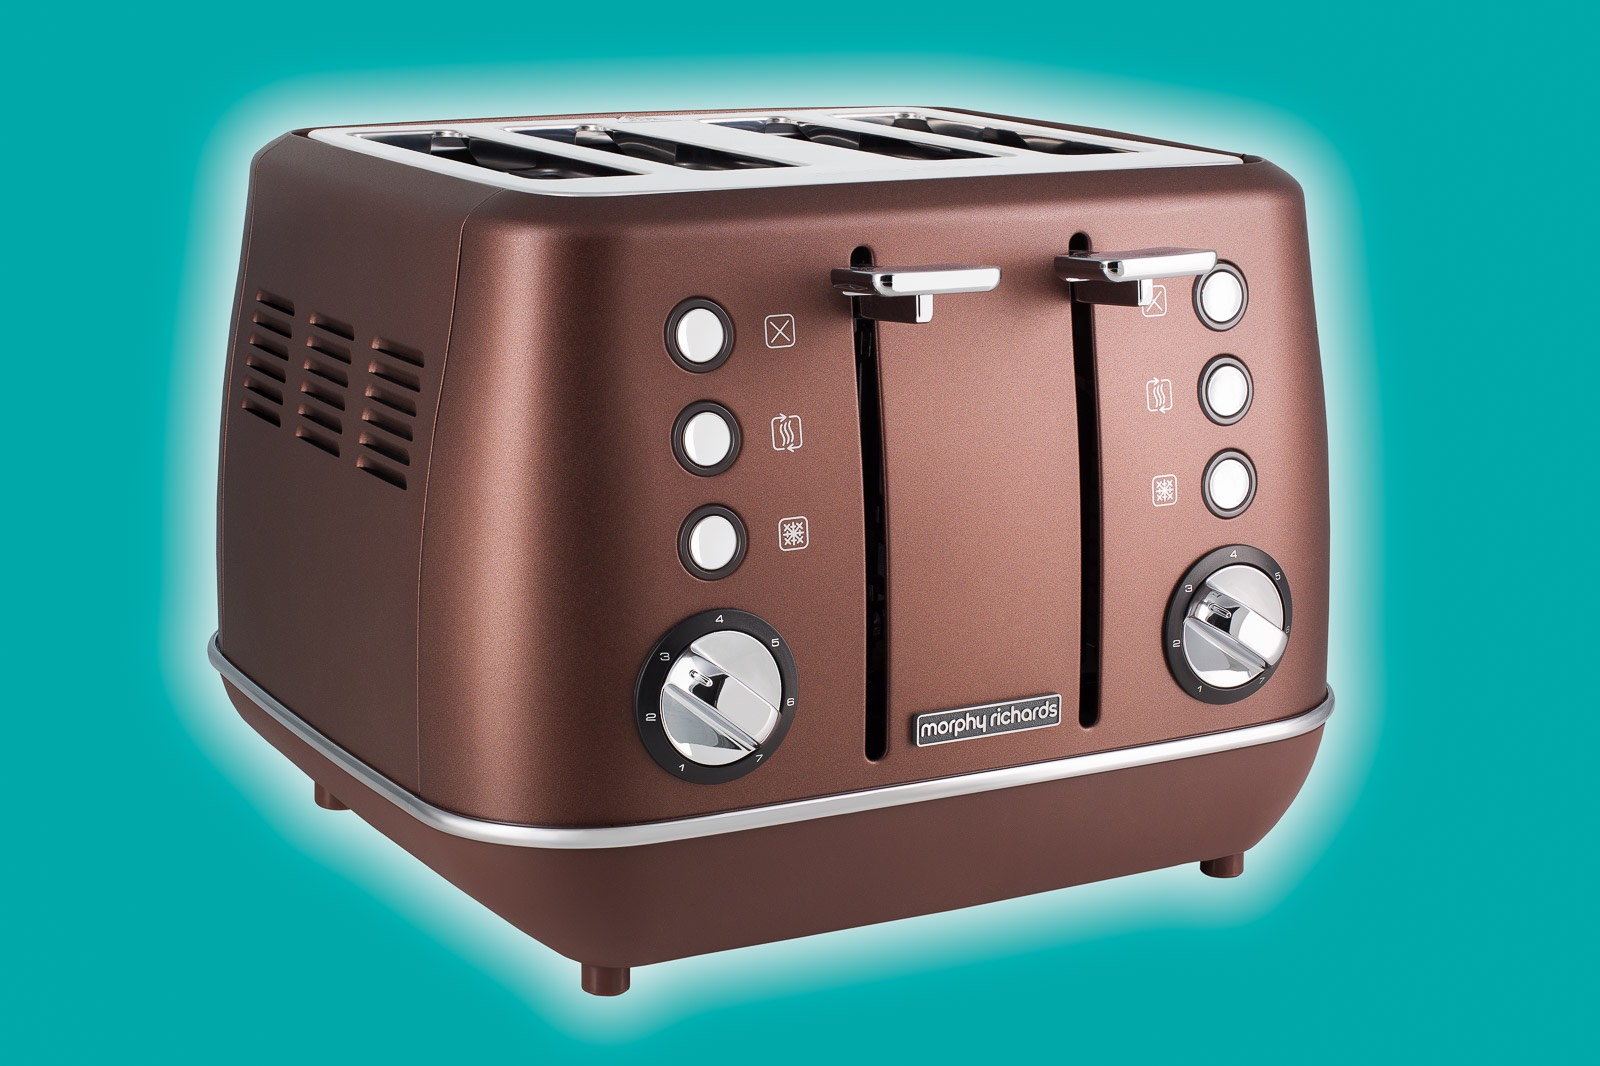 Copper coloured kitchen toaster appliance on teal background with white highlight surround